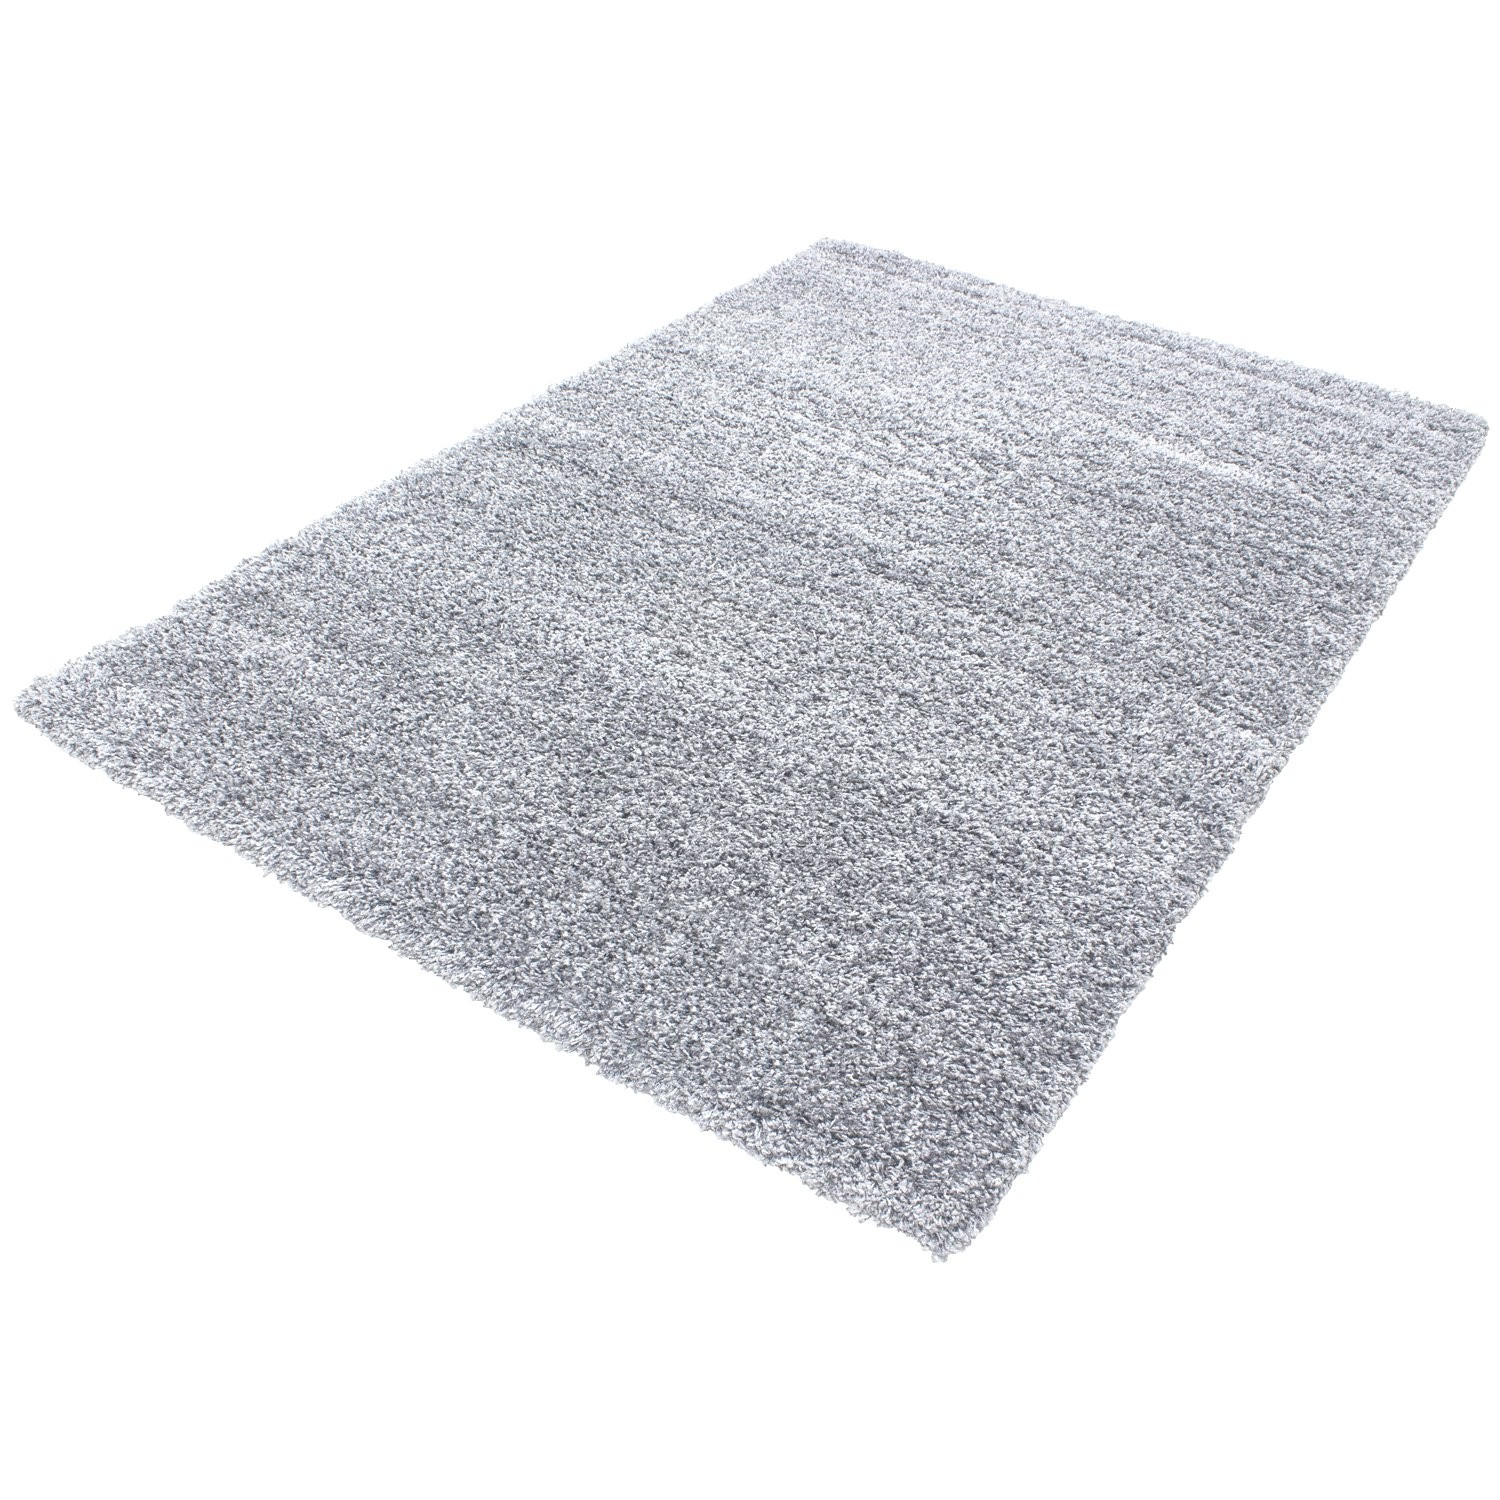 tapis shaggy gris clair moderne tapis design uni en polypropyl ne vasco. Black Bedroom Furniture Sets. Home Design Ideas